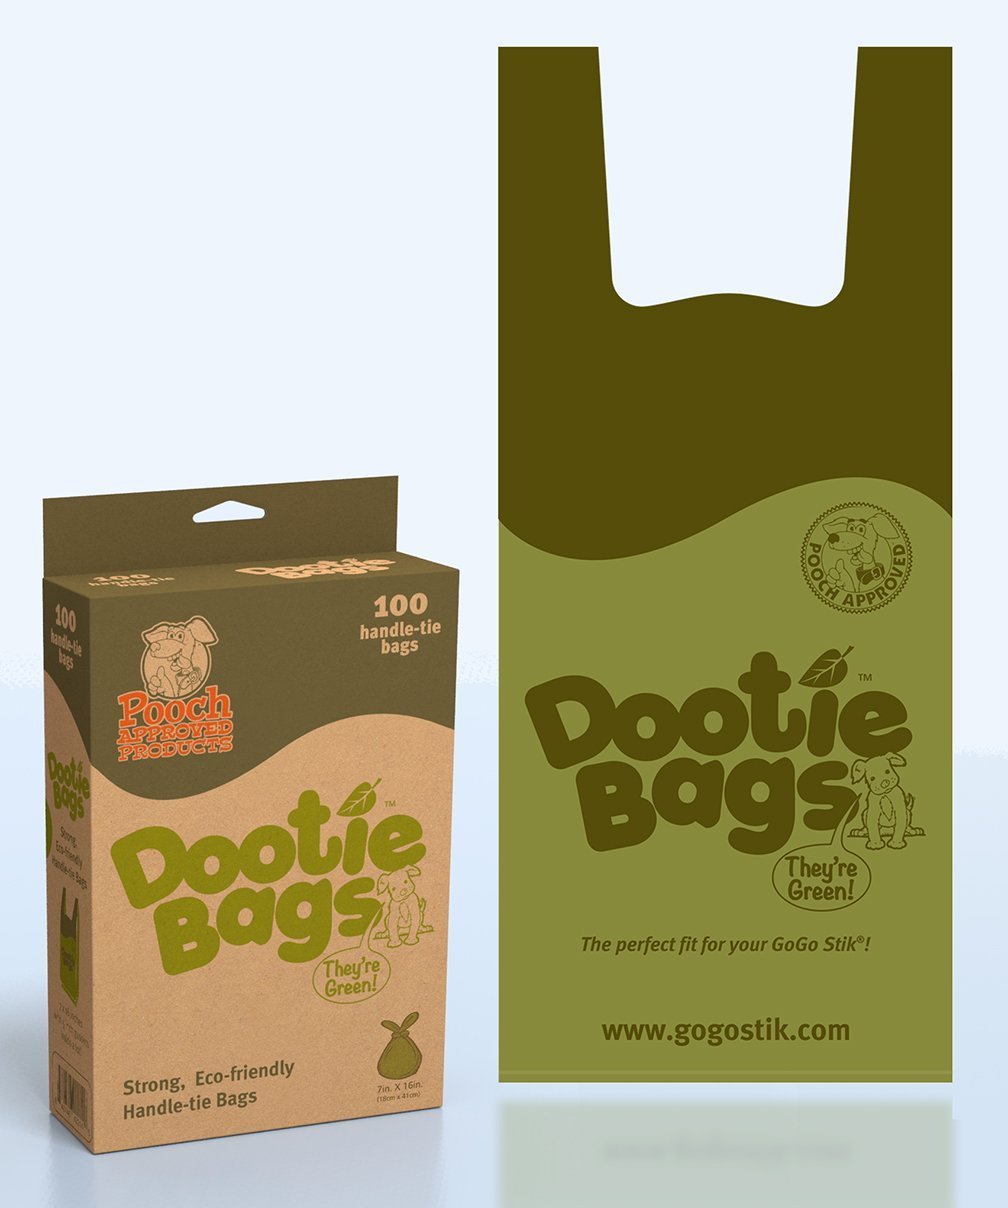 Dootie Bags - 100-Count Handle Tie, With Gussets - Great Fit for GoGo Stik!